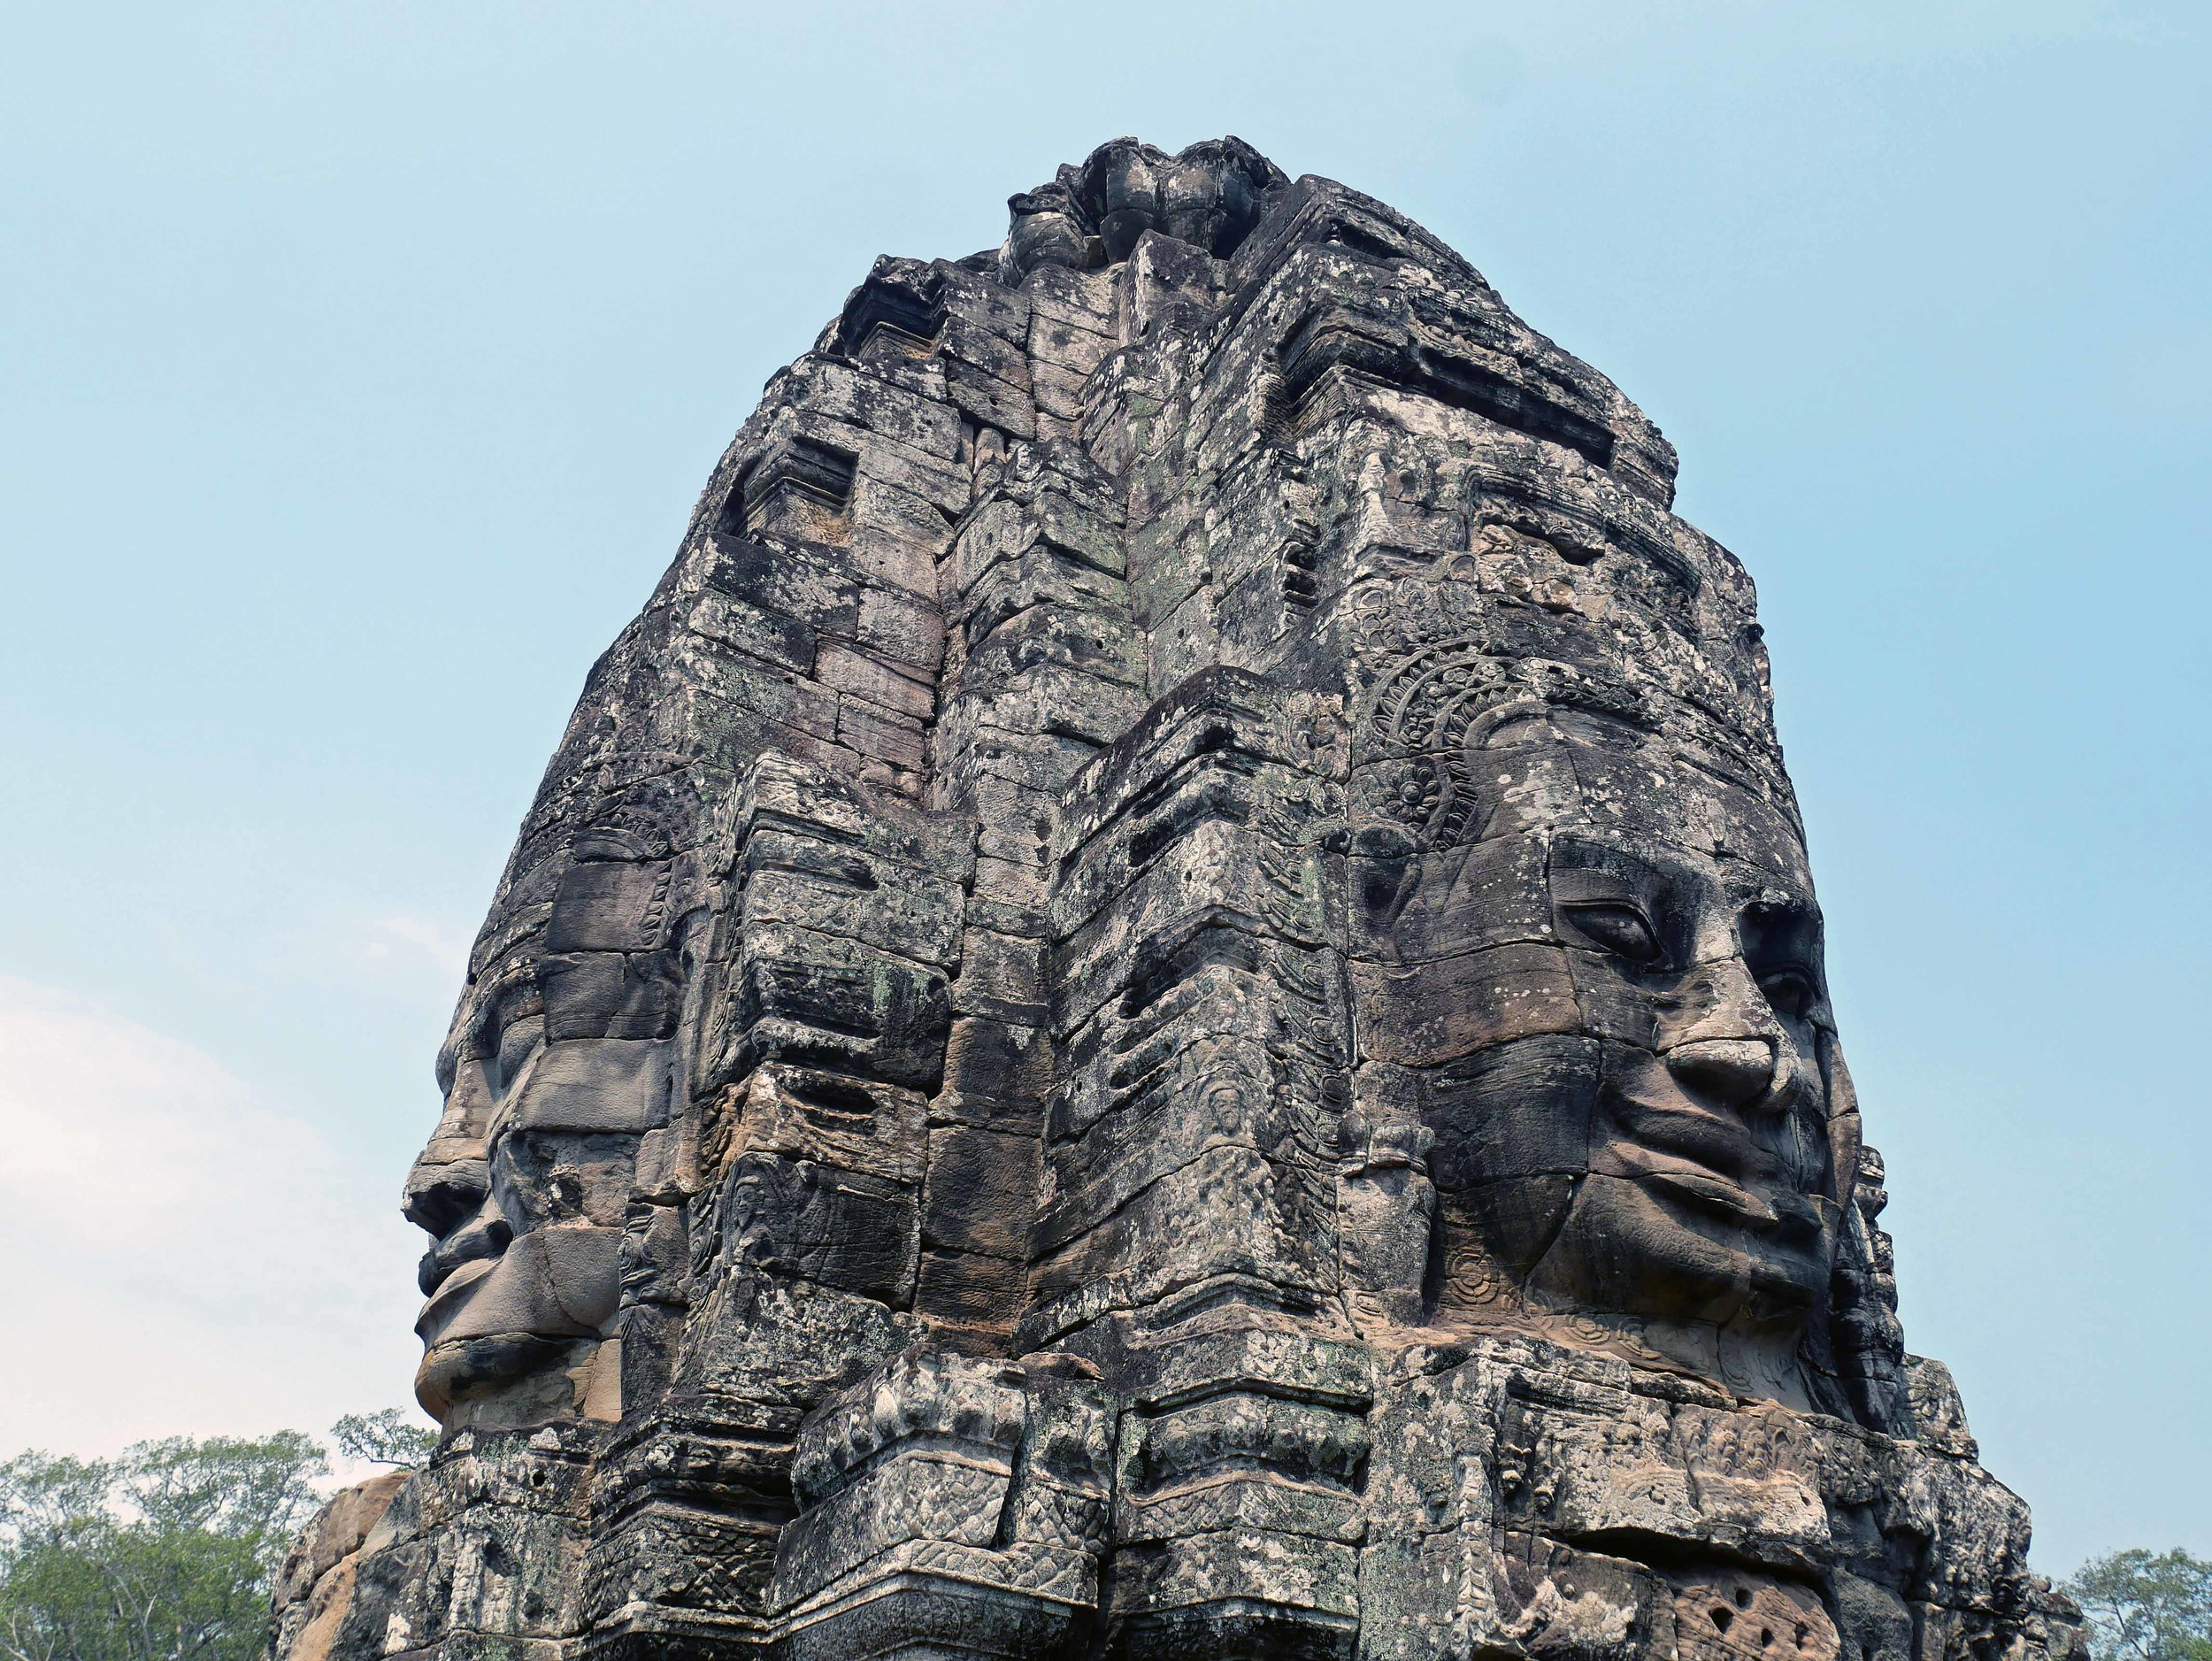 Bayon, our favorite temple in Angkor, contains oversized carvings of peaceful and smiling faces (Feb 27).